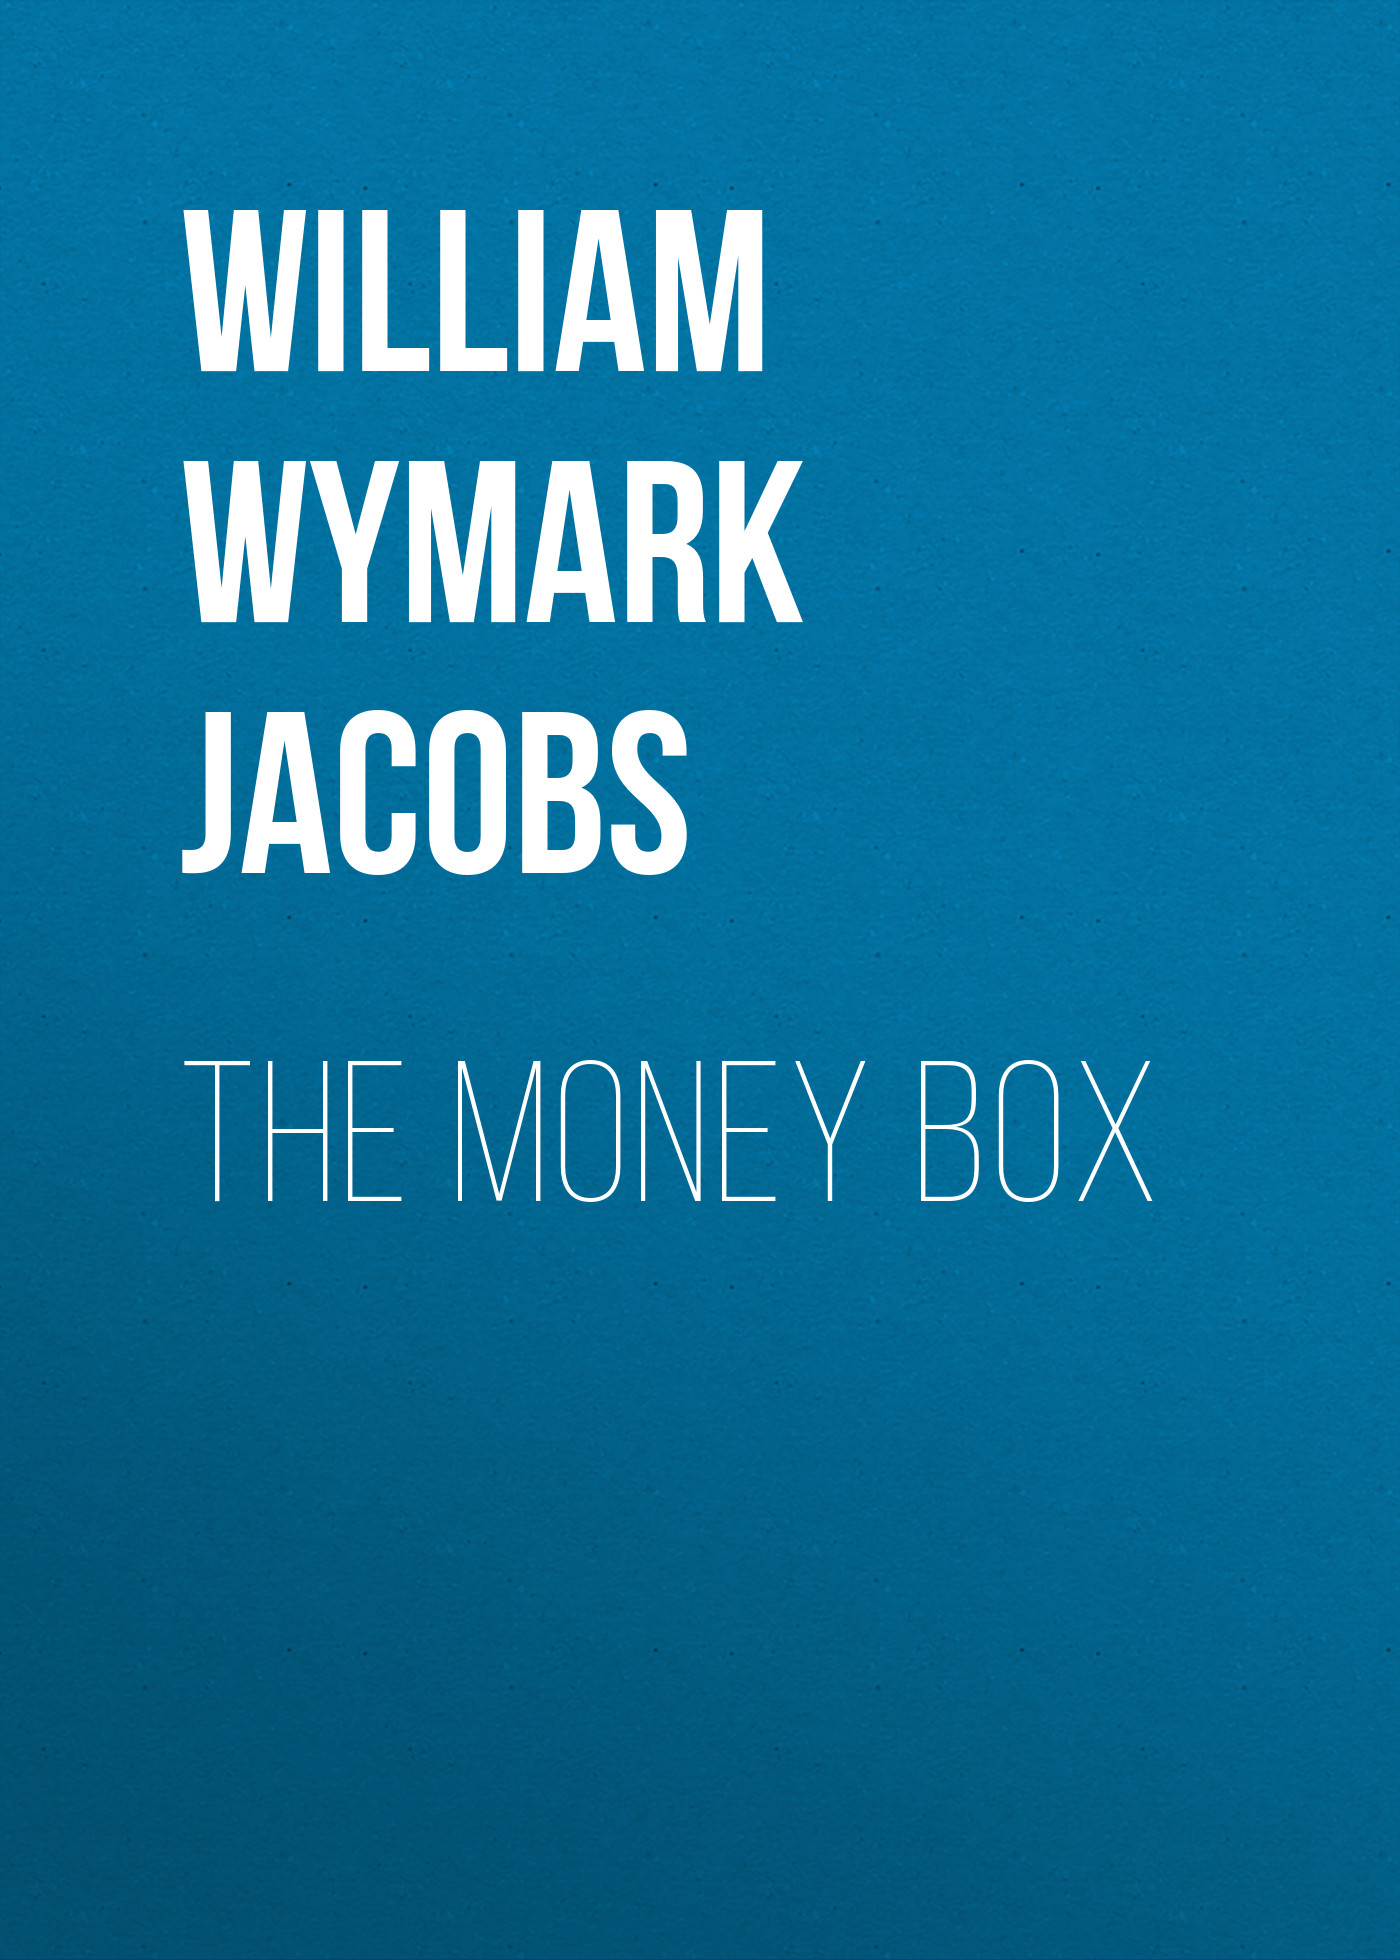 William Wymark Jacobs The Money Box